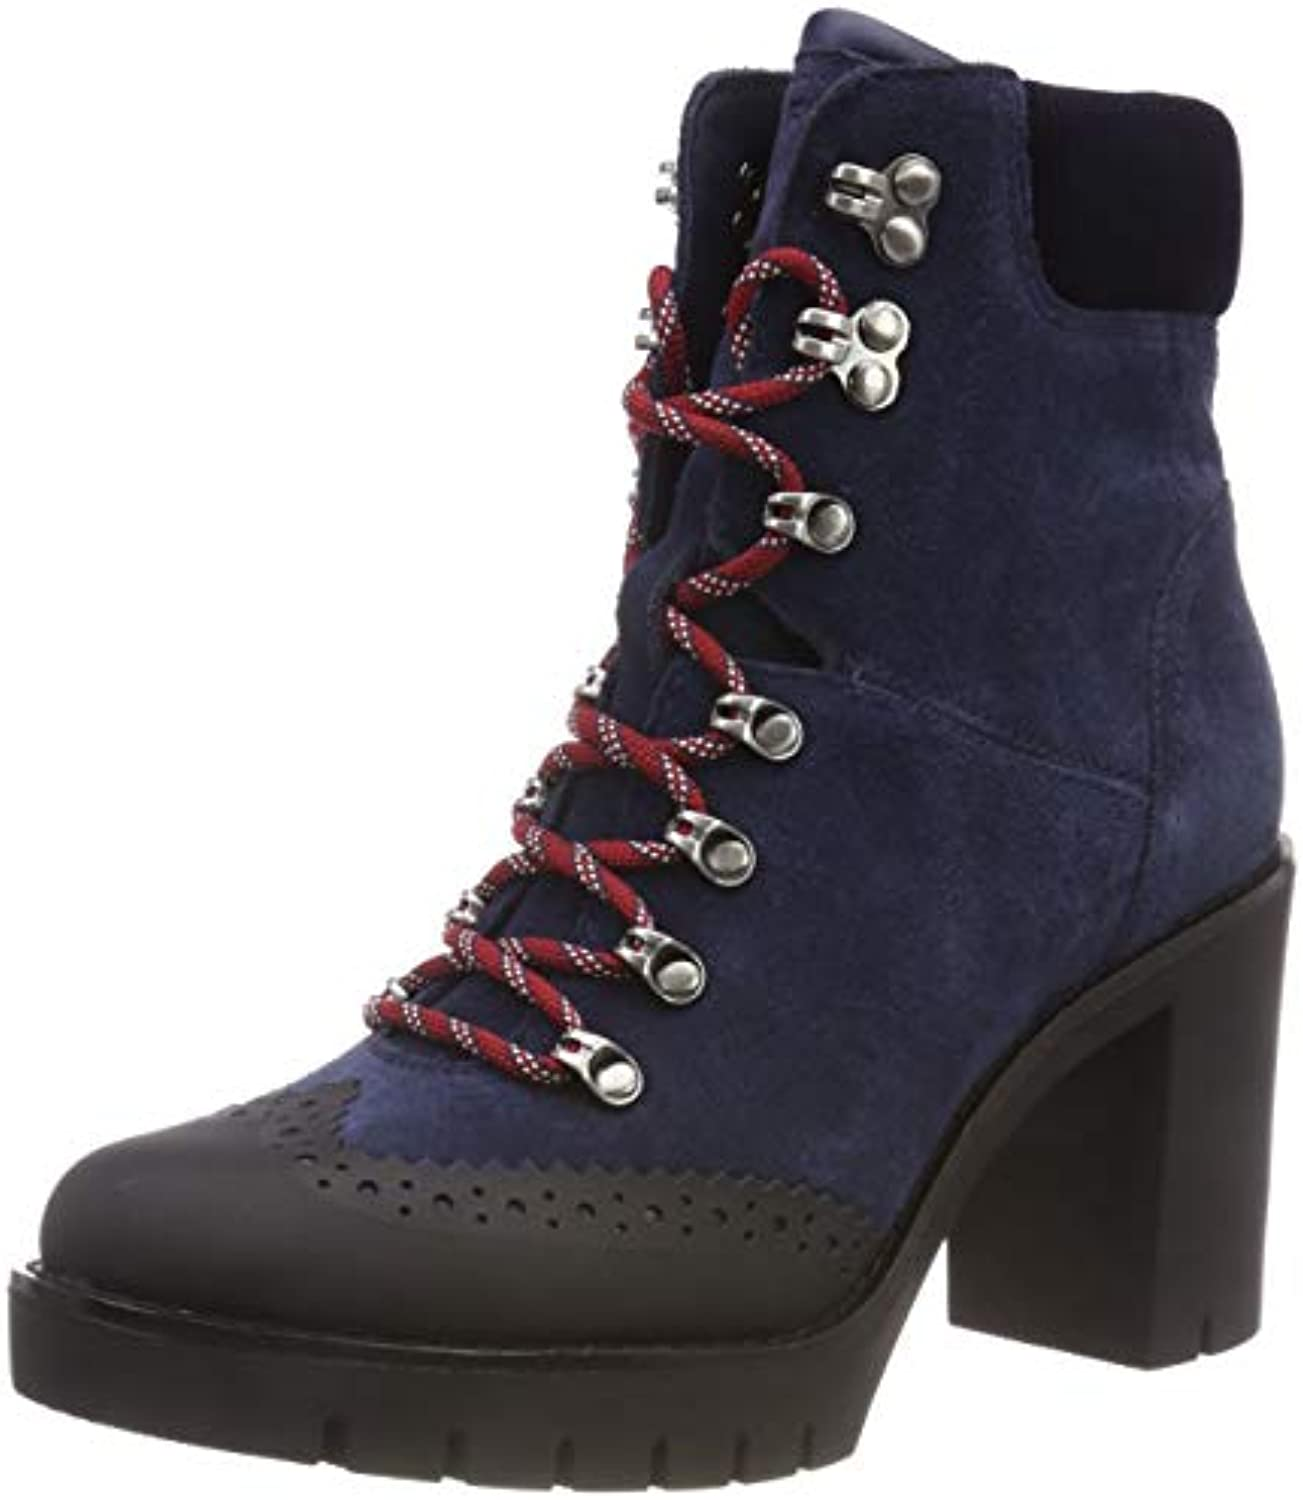 Tommy Hilfiger Modern Hiking Heeled FemmeB07D991H9MParent Boot, Bottes Rangers FemmeB07D991H9MParent Heeled 831933